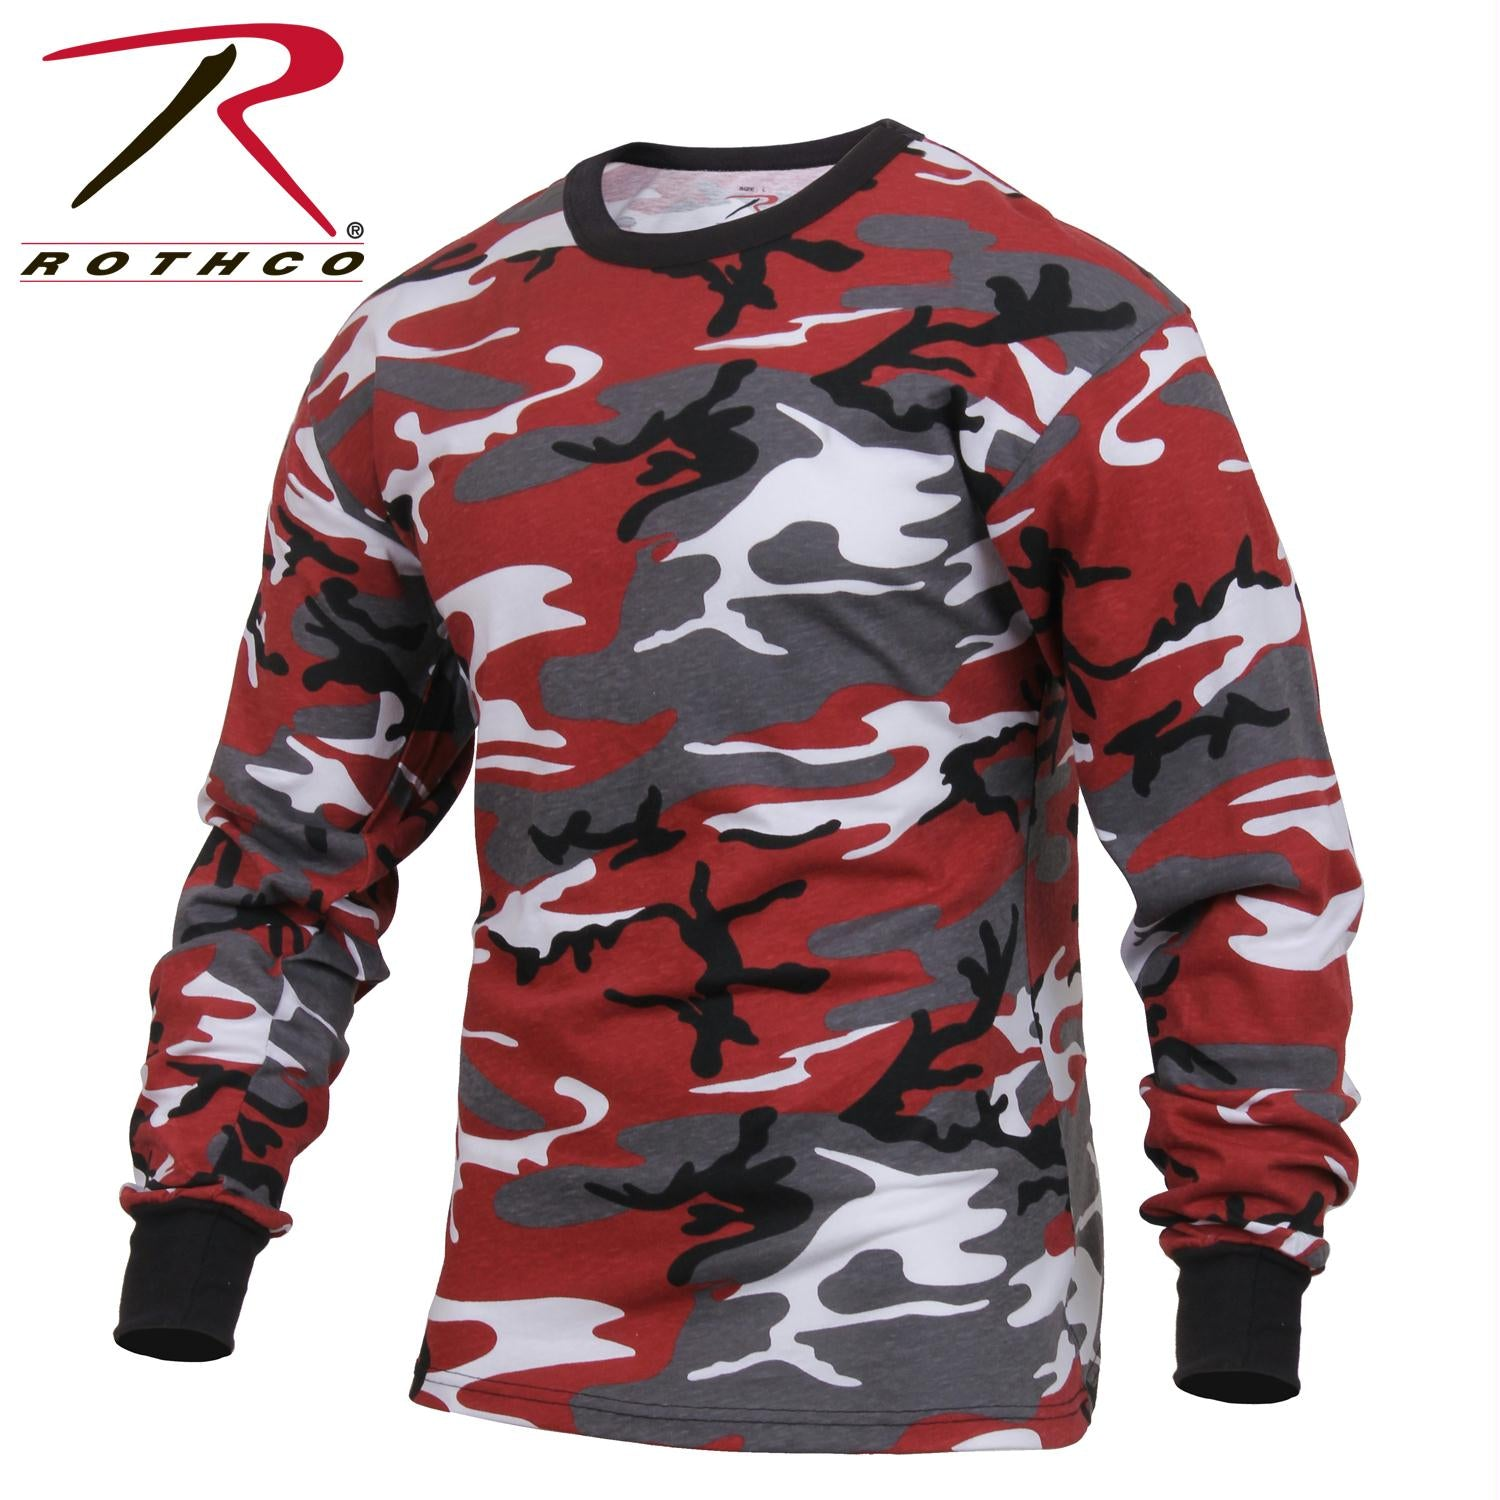 Rothco Long Sleeve Colored Camo T-Shirt